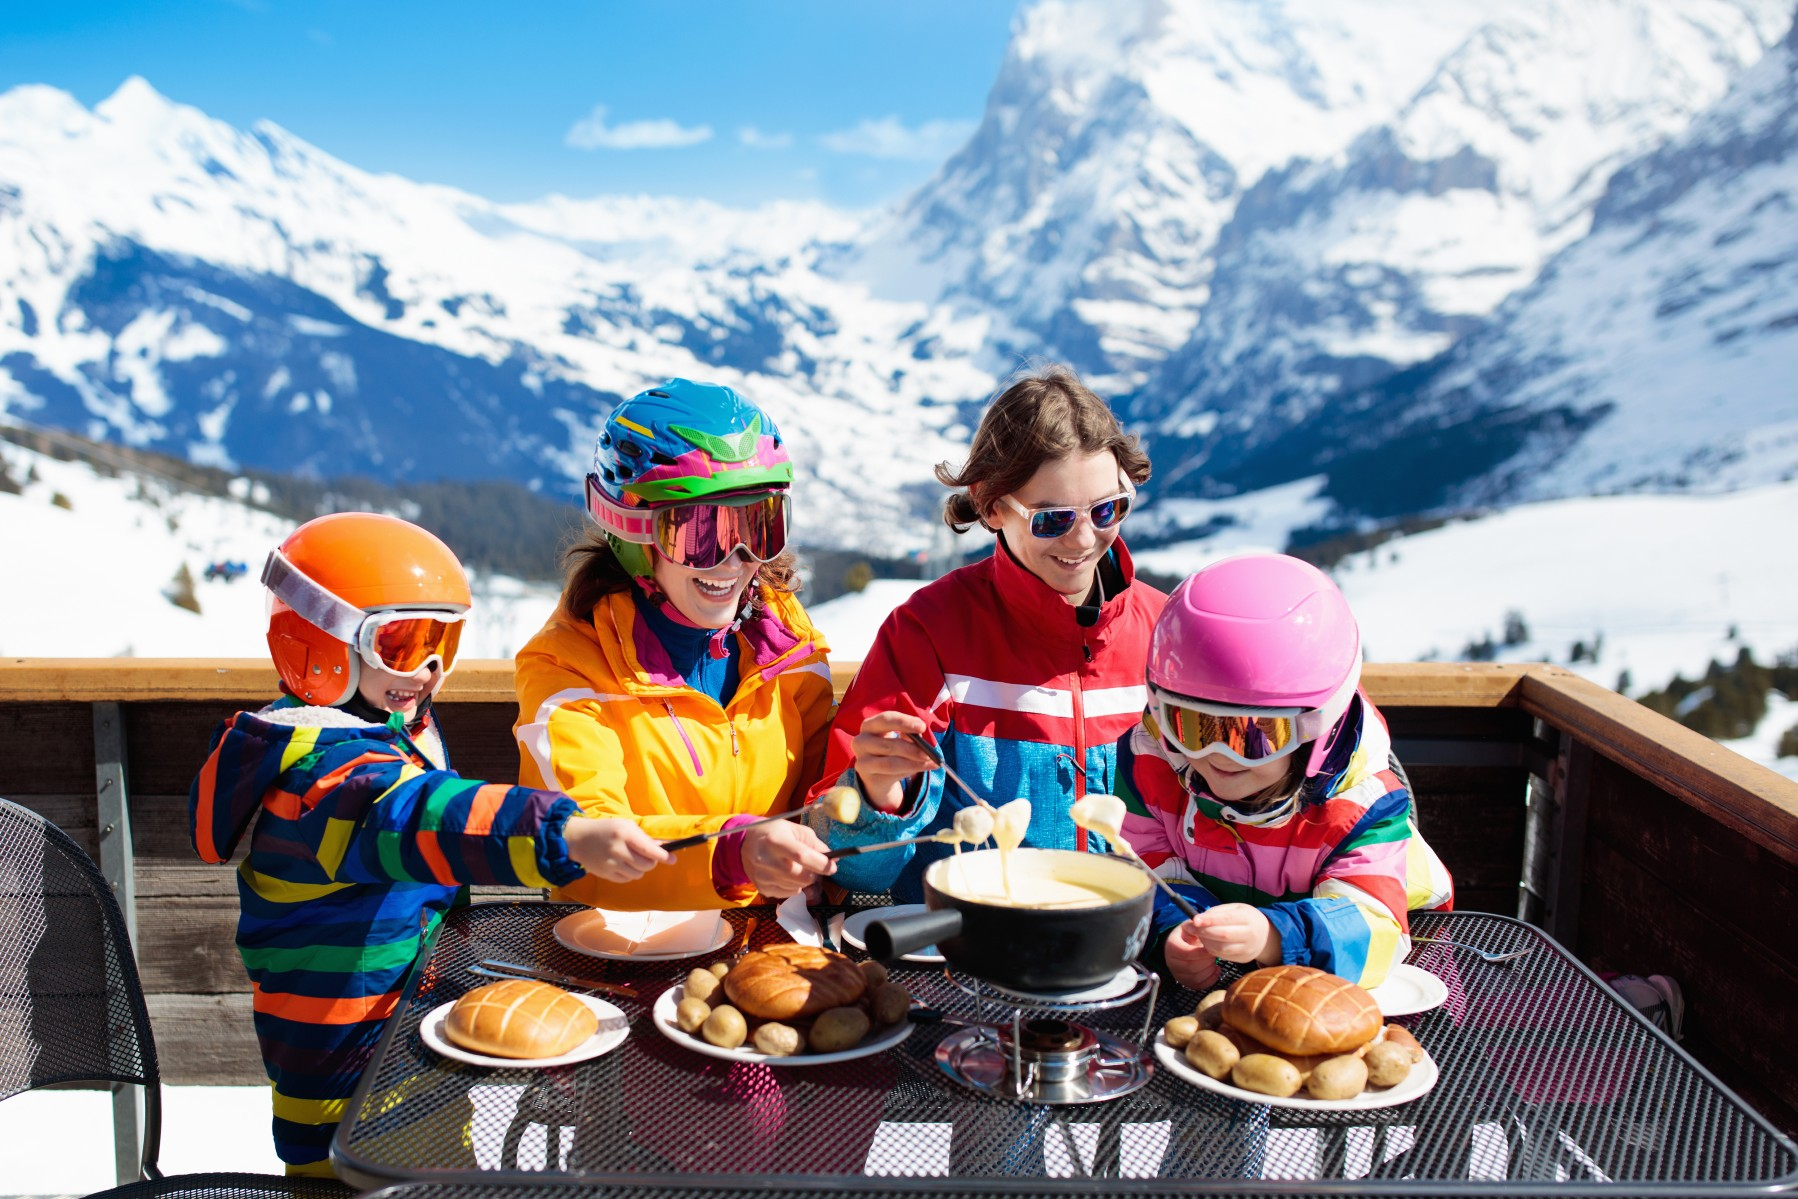 family with young children shares fondue on a ski holiday in Switzerland